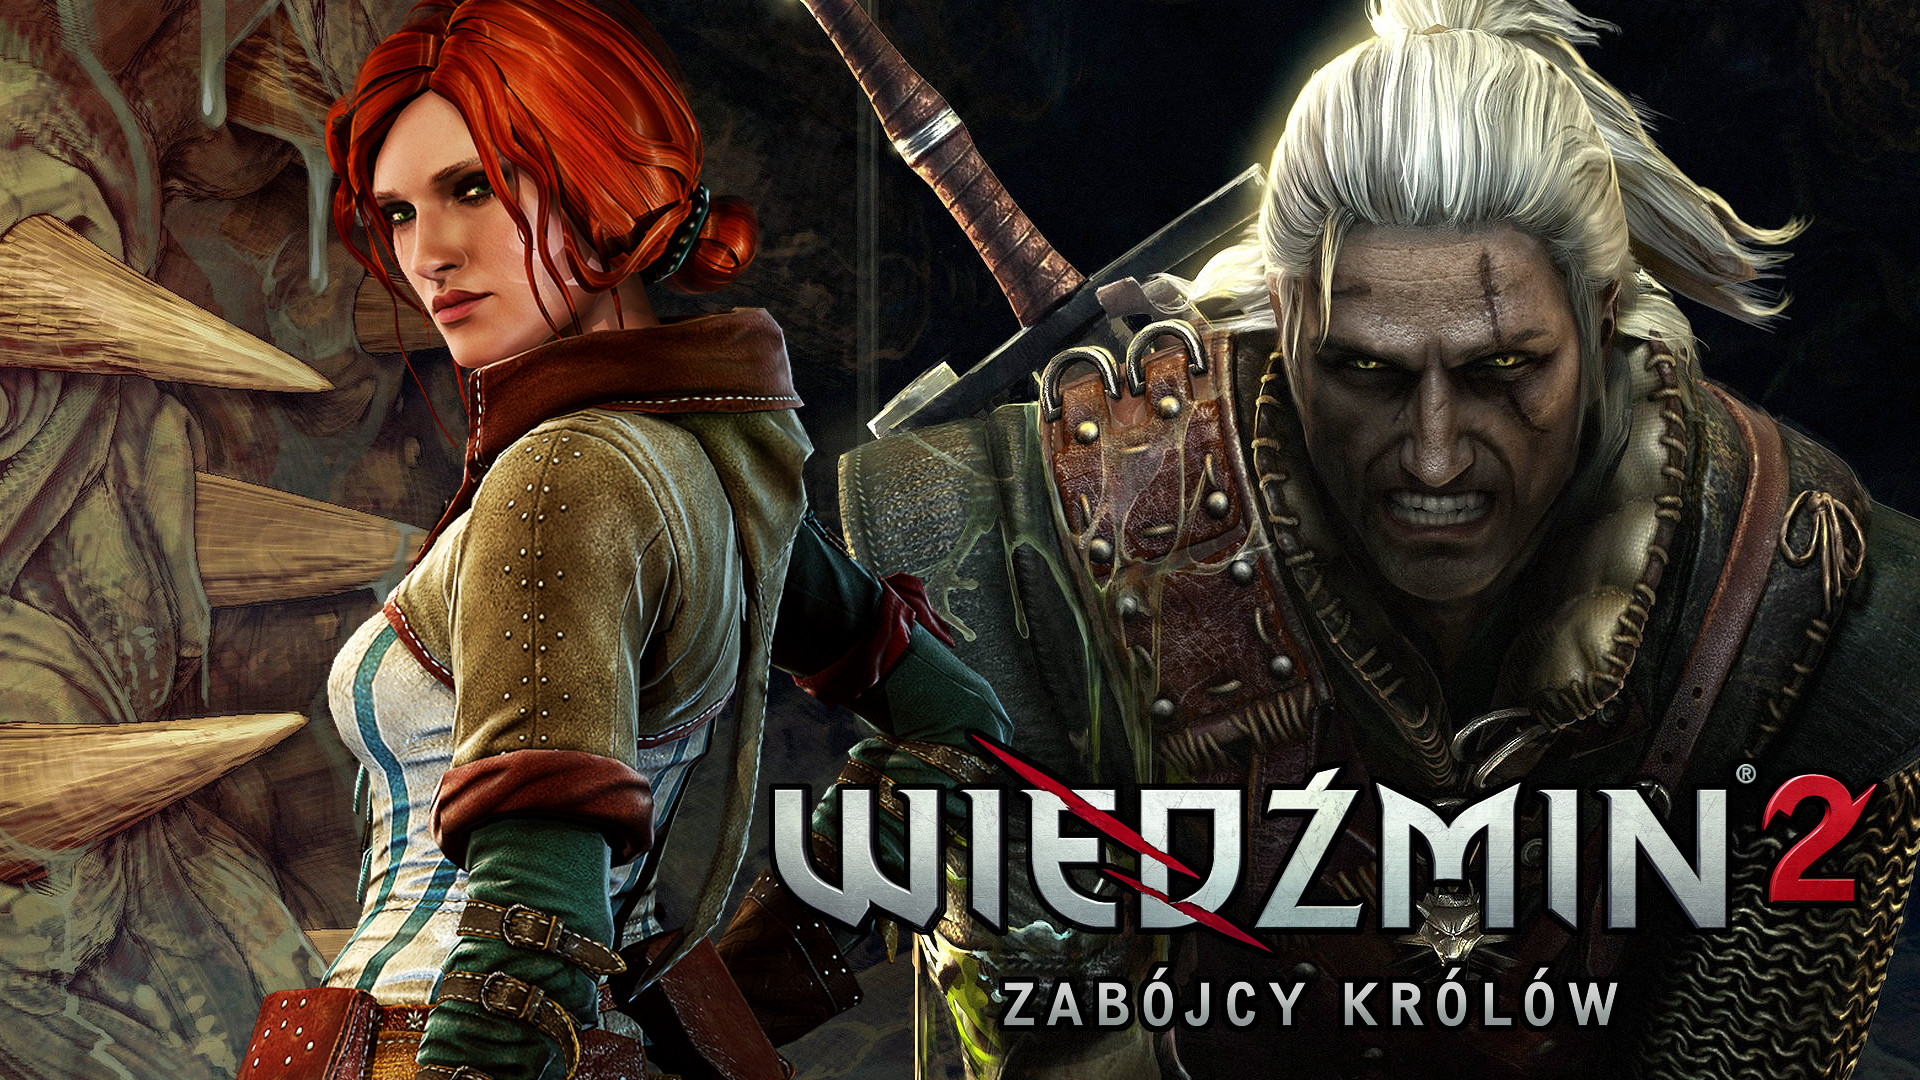 Video Game – The Witcher 2: Assassins Of Kings Triss Merigold Wallpaper